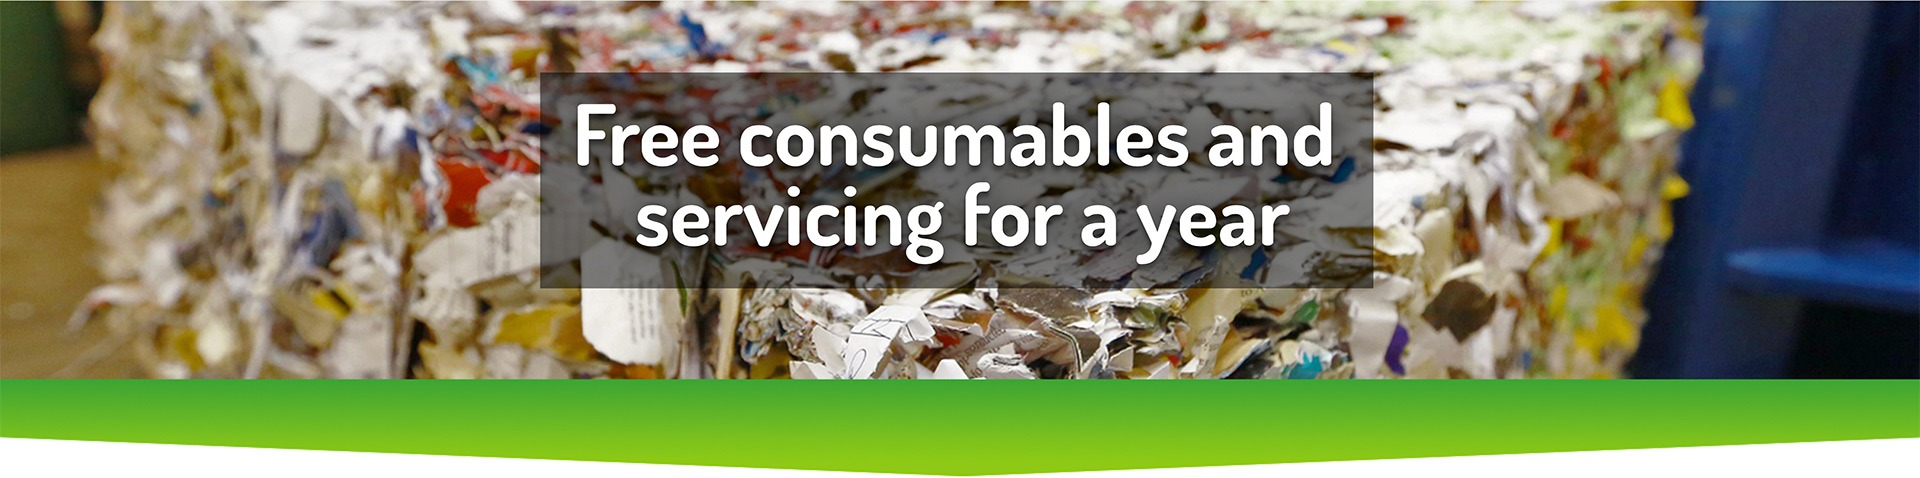 Free consumbales are servicing for a year